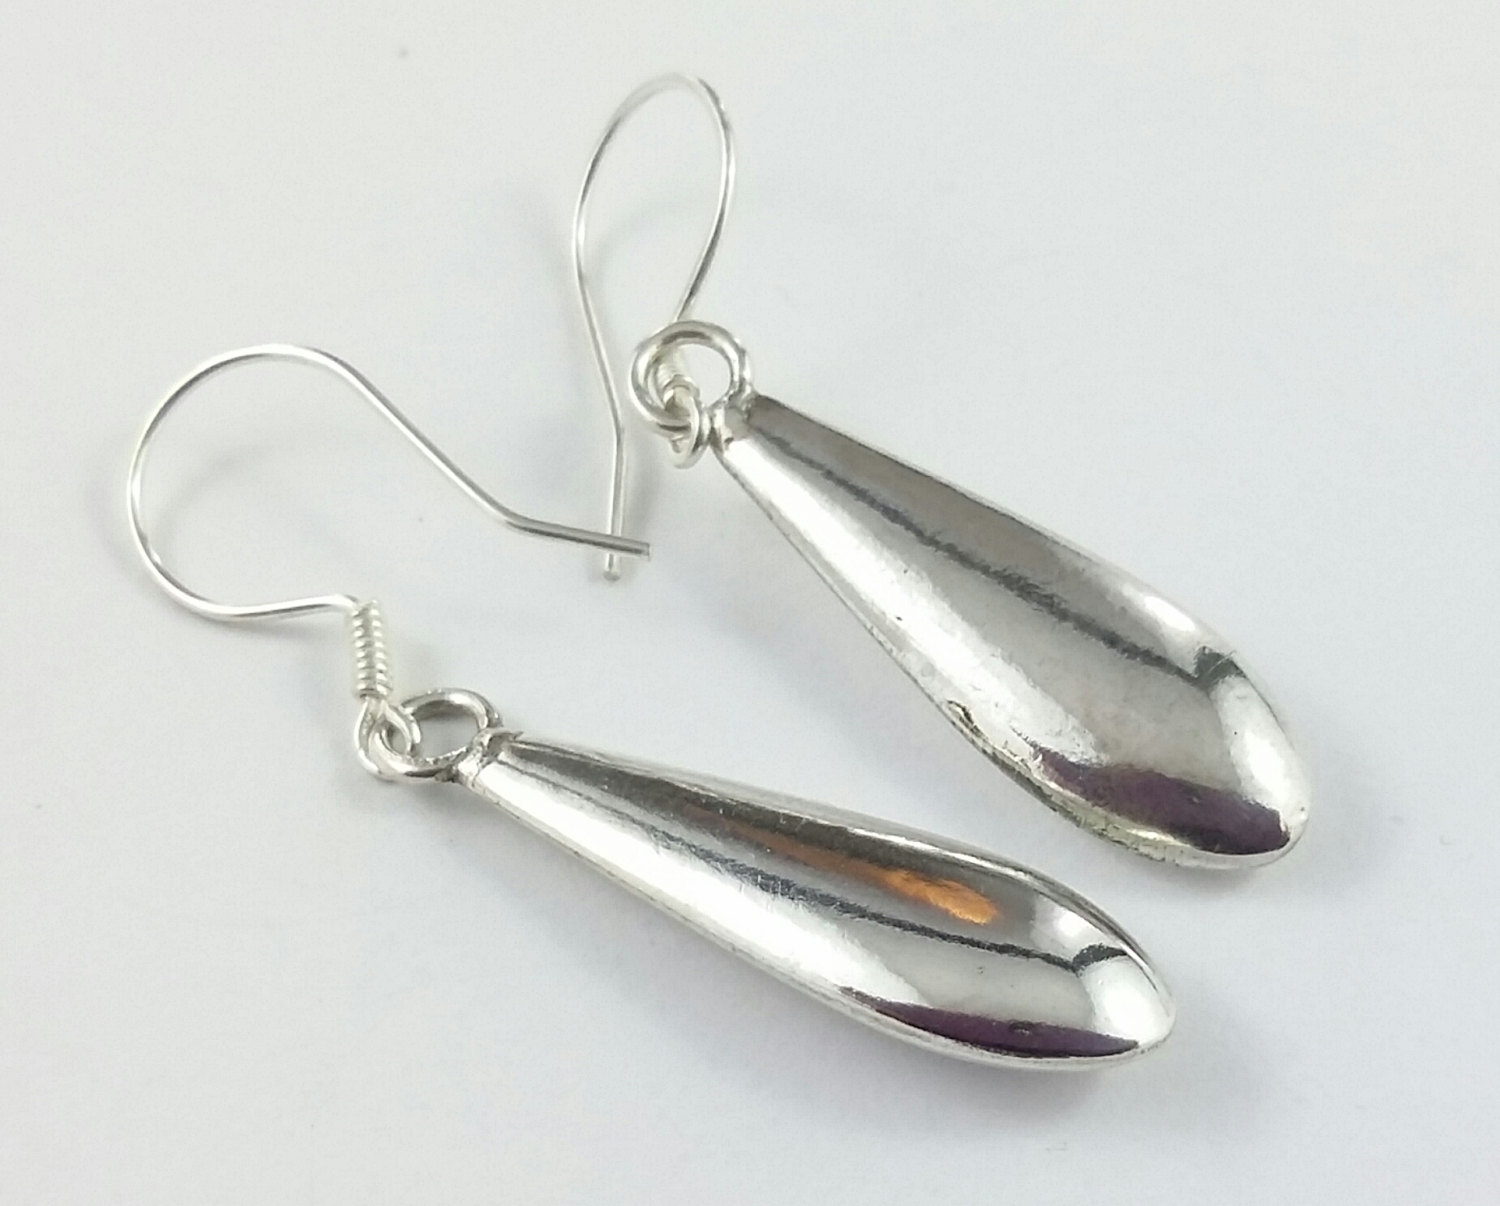 Shiny Sleek Sterling Silver Dagger Earrings Handmade Elegant Simple Modern Stylish Ear Hook Style Drop